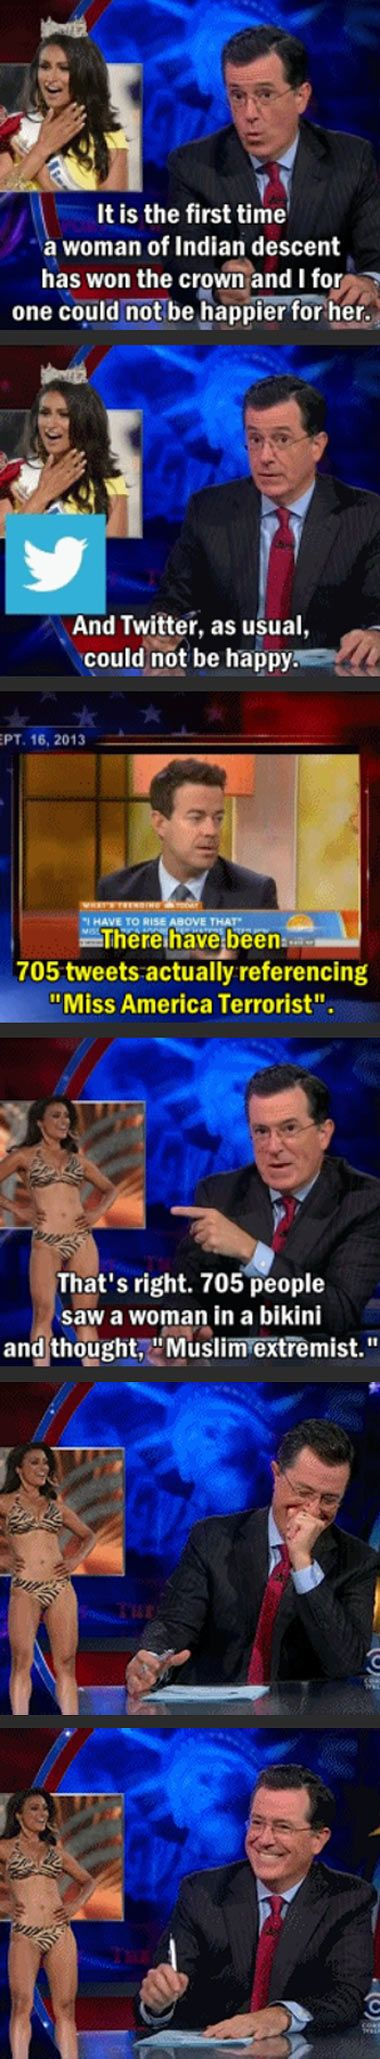 Colbert's take on those displeased with Miss America